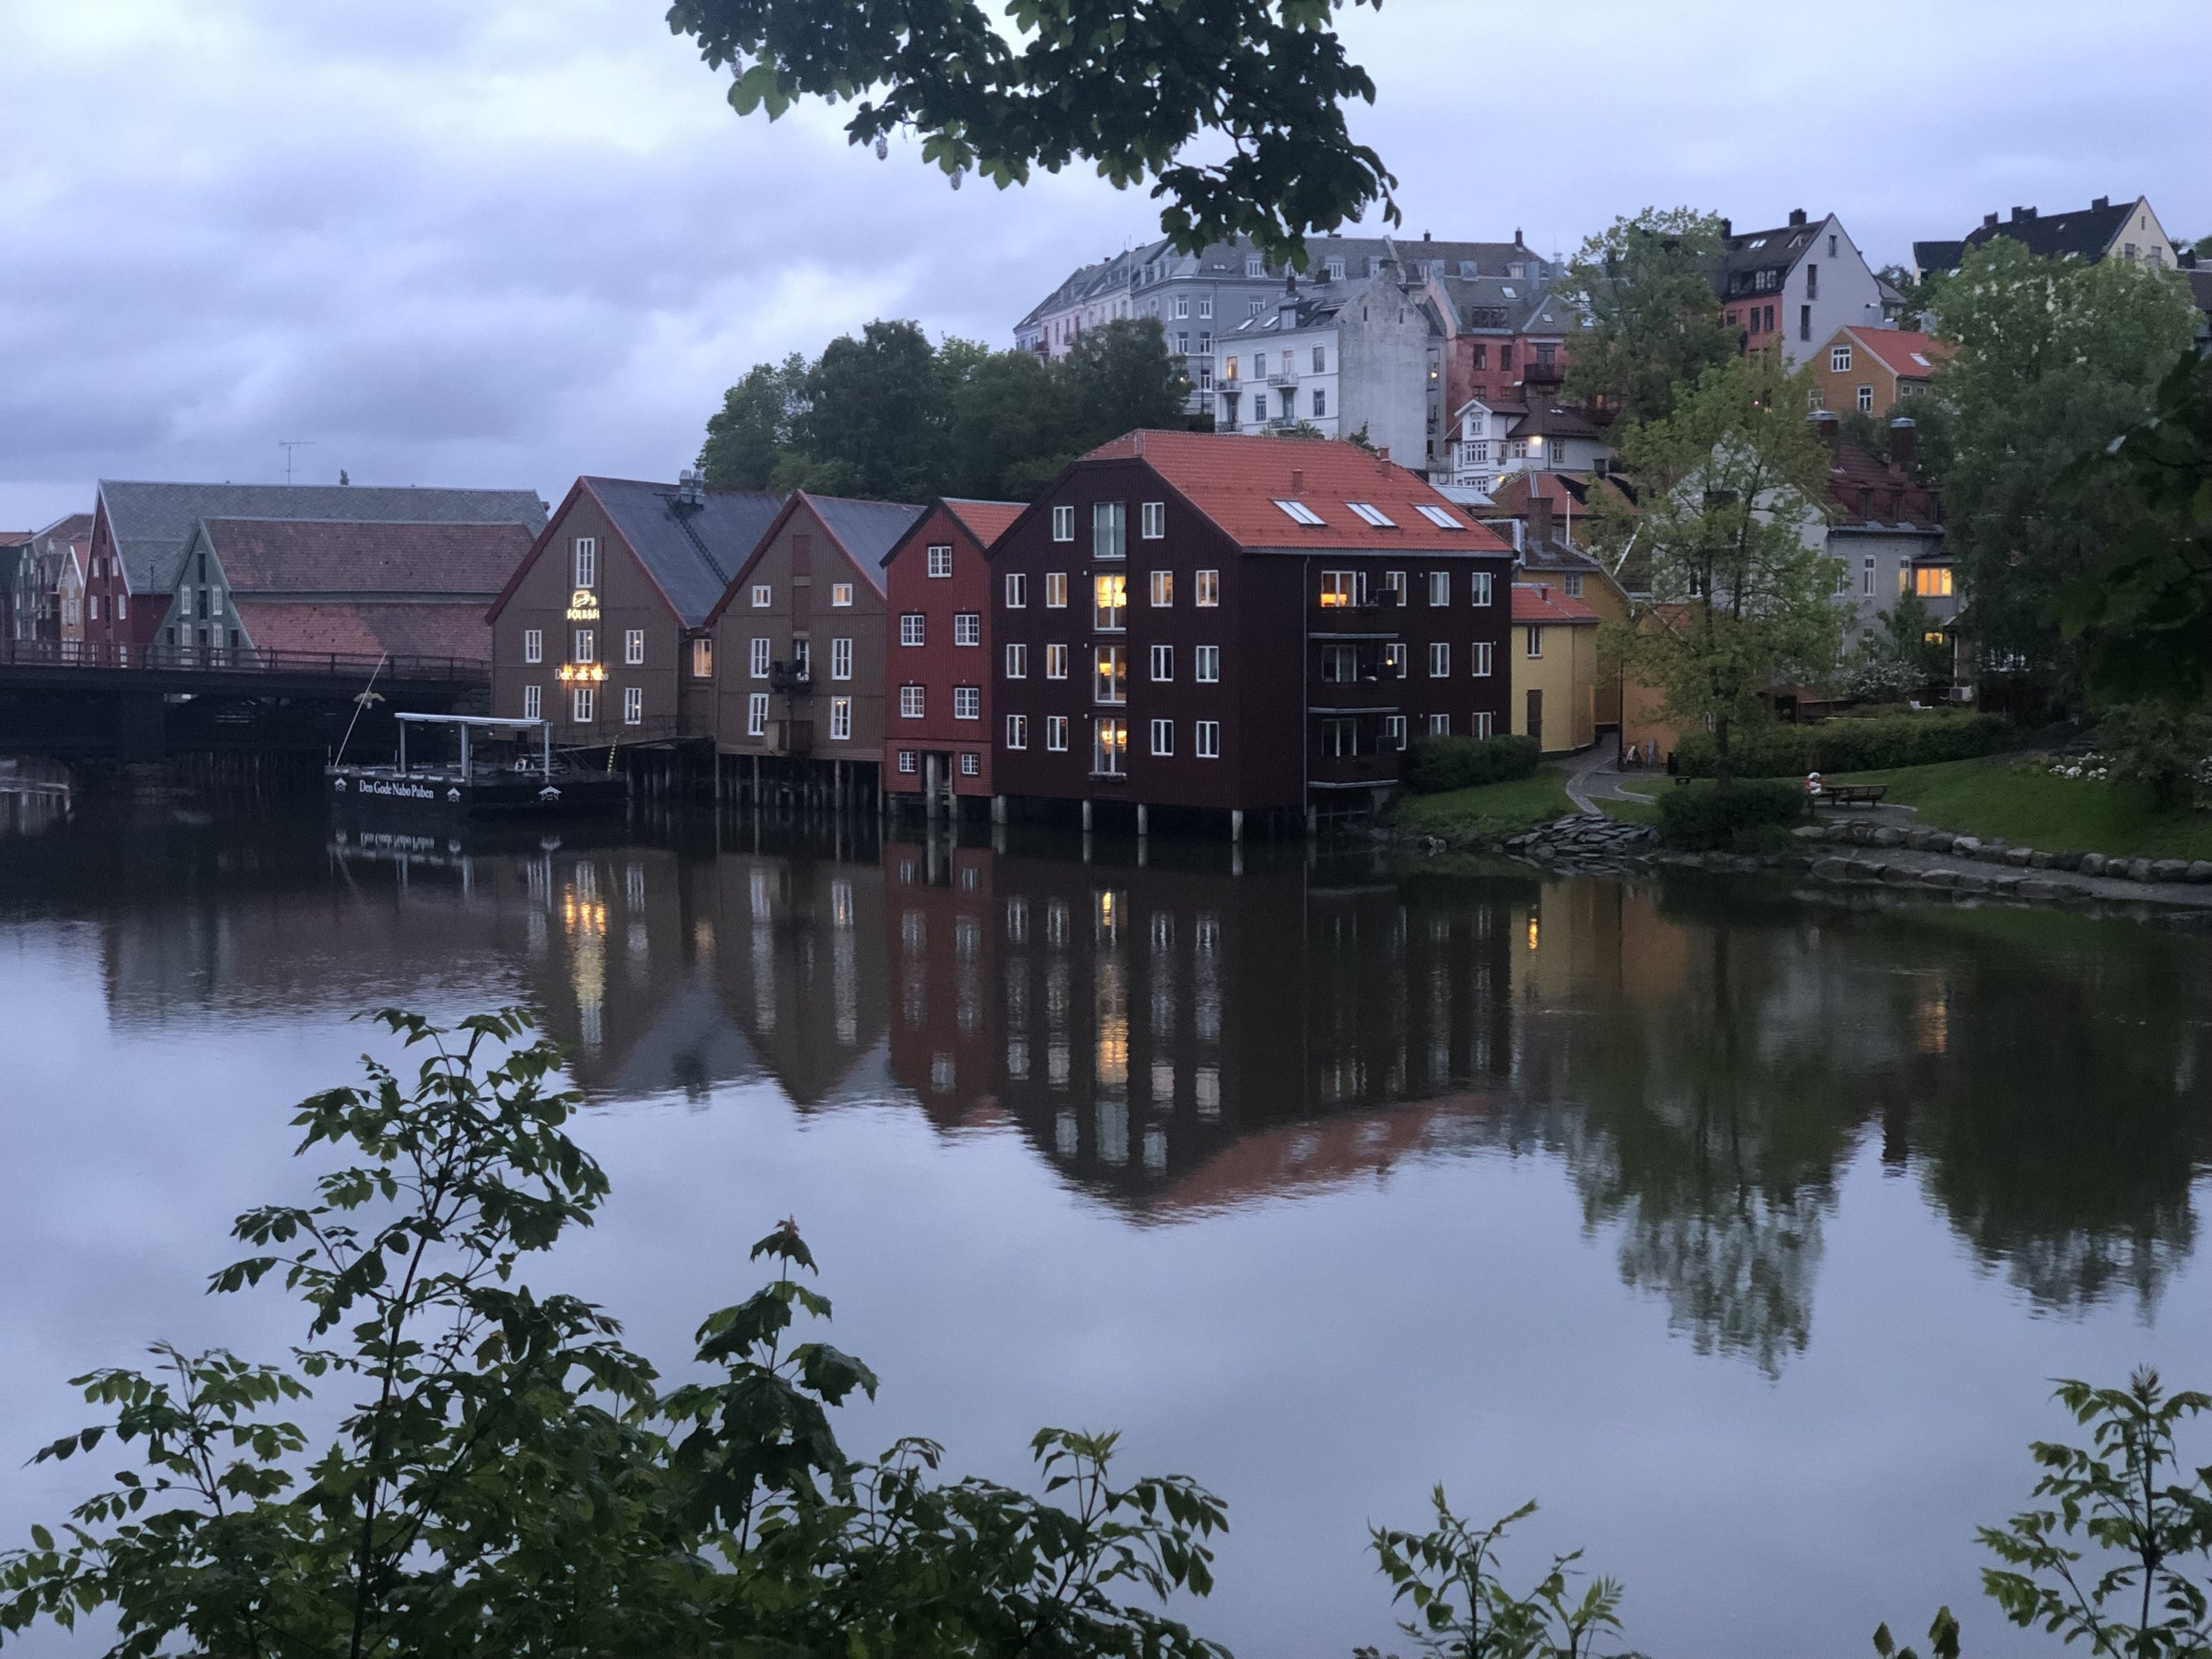 Trondheim is another city along the western coast of Norway at the end of a long fjord. In the photo is the building where we rented an AirBNB. It is the darker building across the river built on pilings.